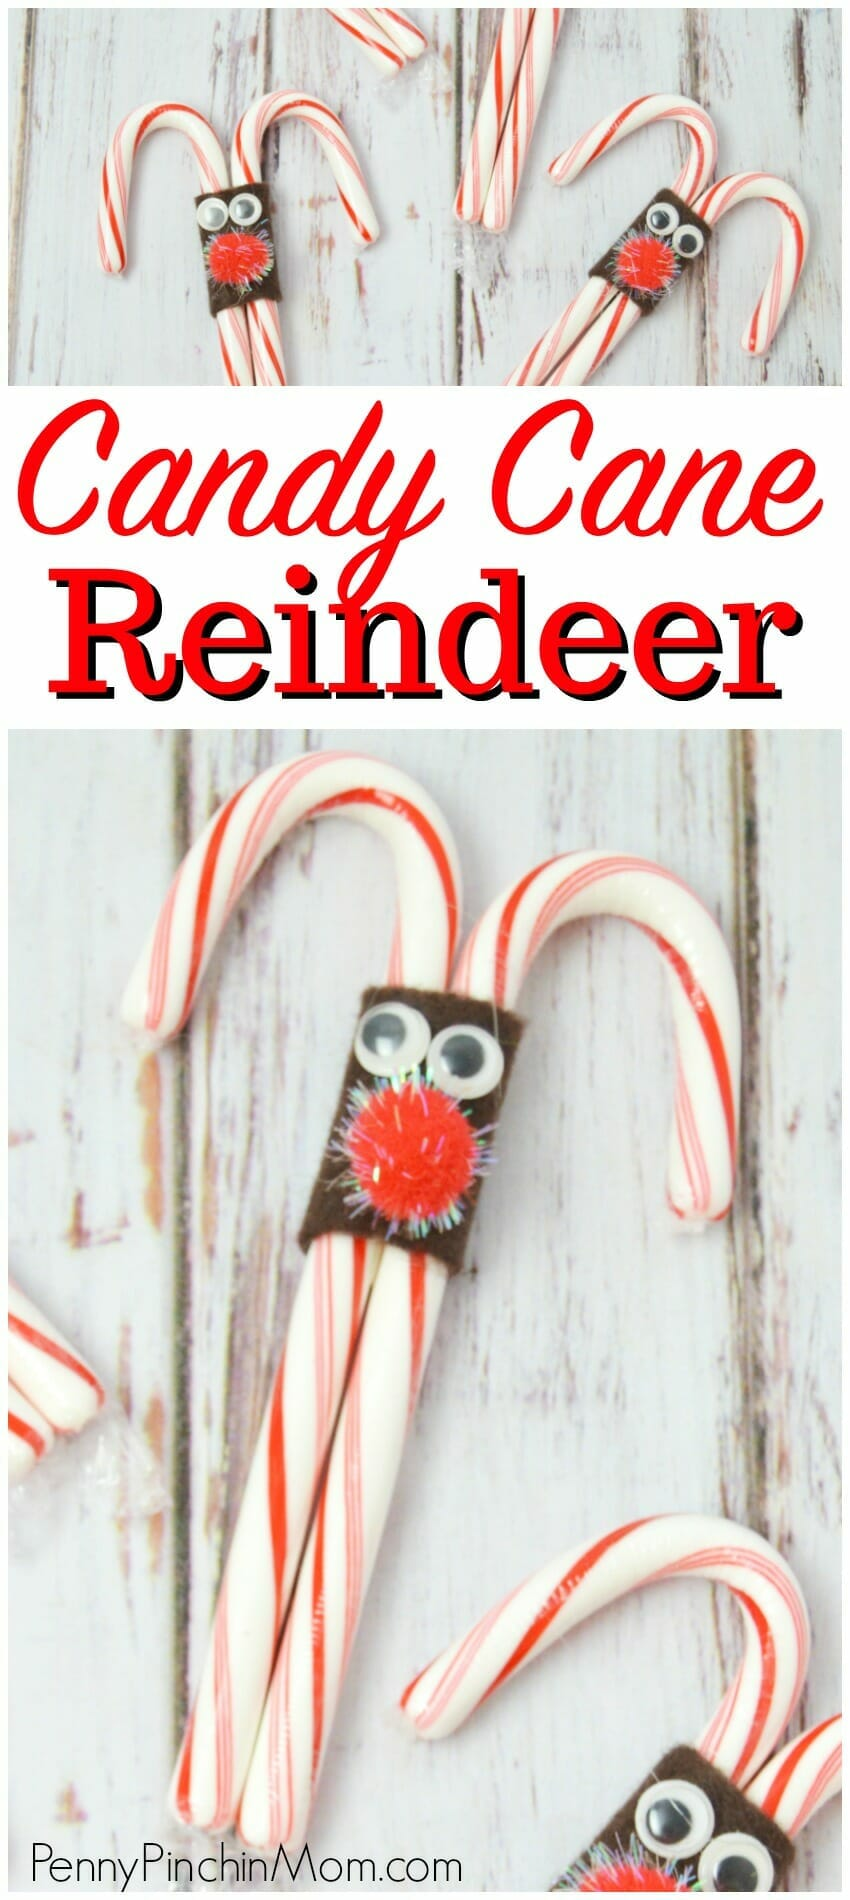 Candy Cane Reindeer - Super Easy Party Craft Idea